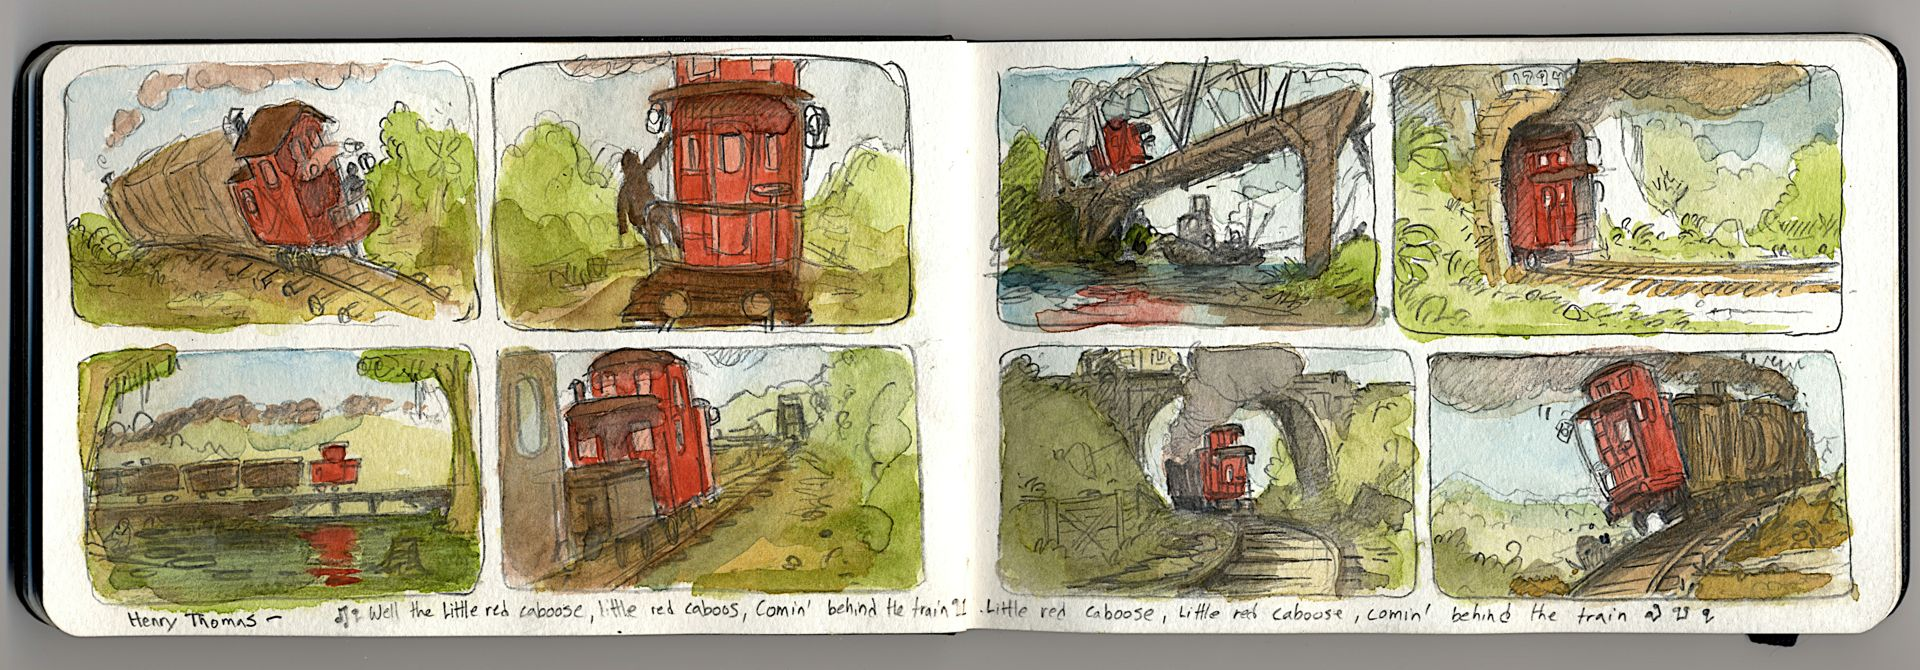 The the little red Caboose, little red Caboose, coming behind the train- By Henry Thomas is one of our favorite songs these days.